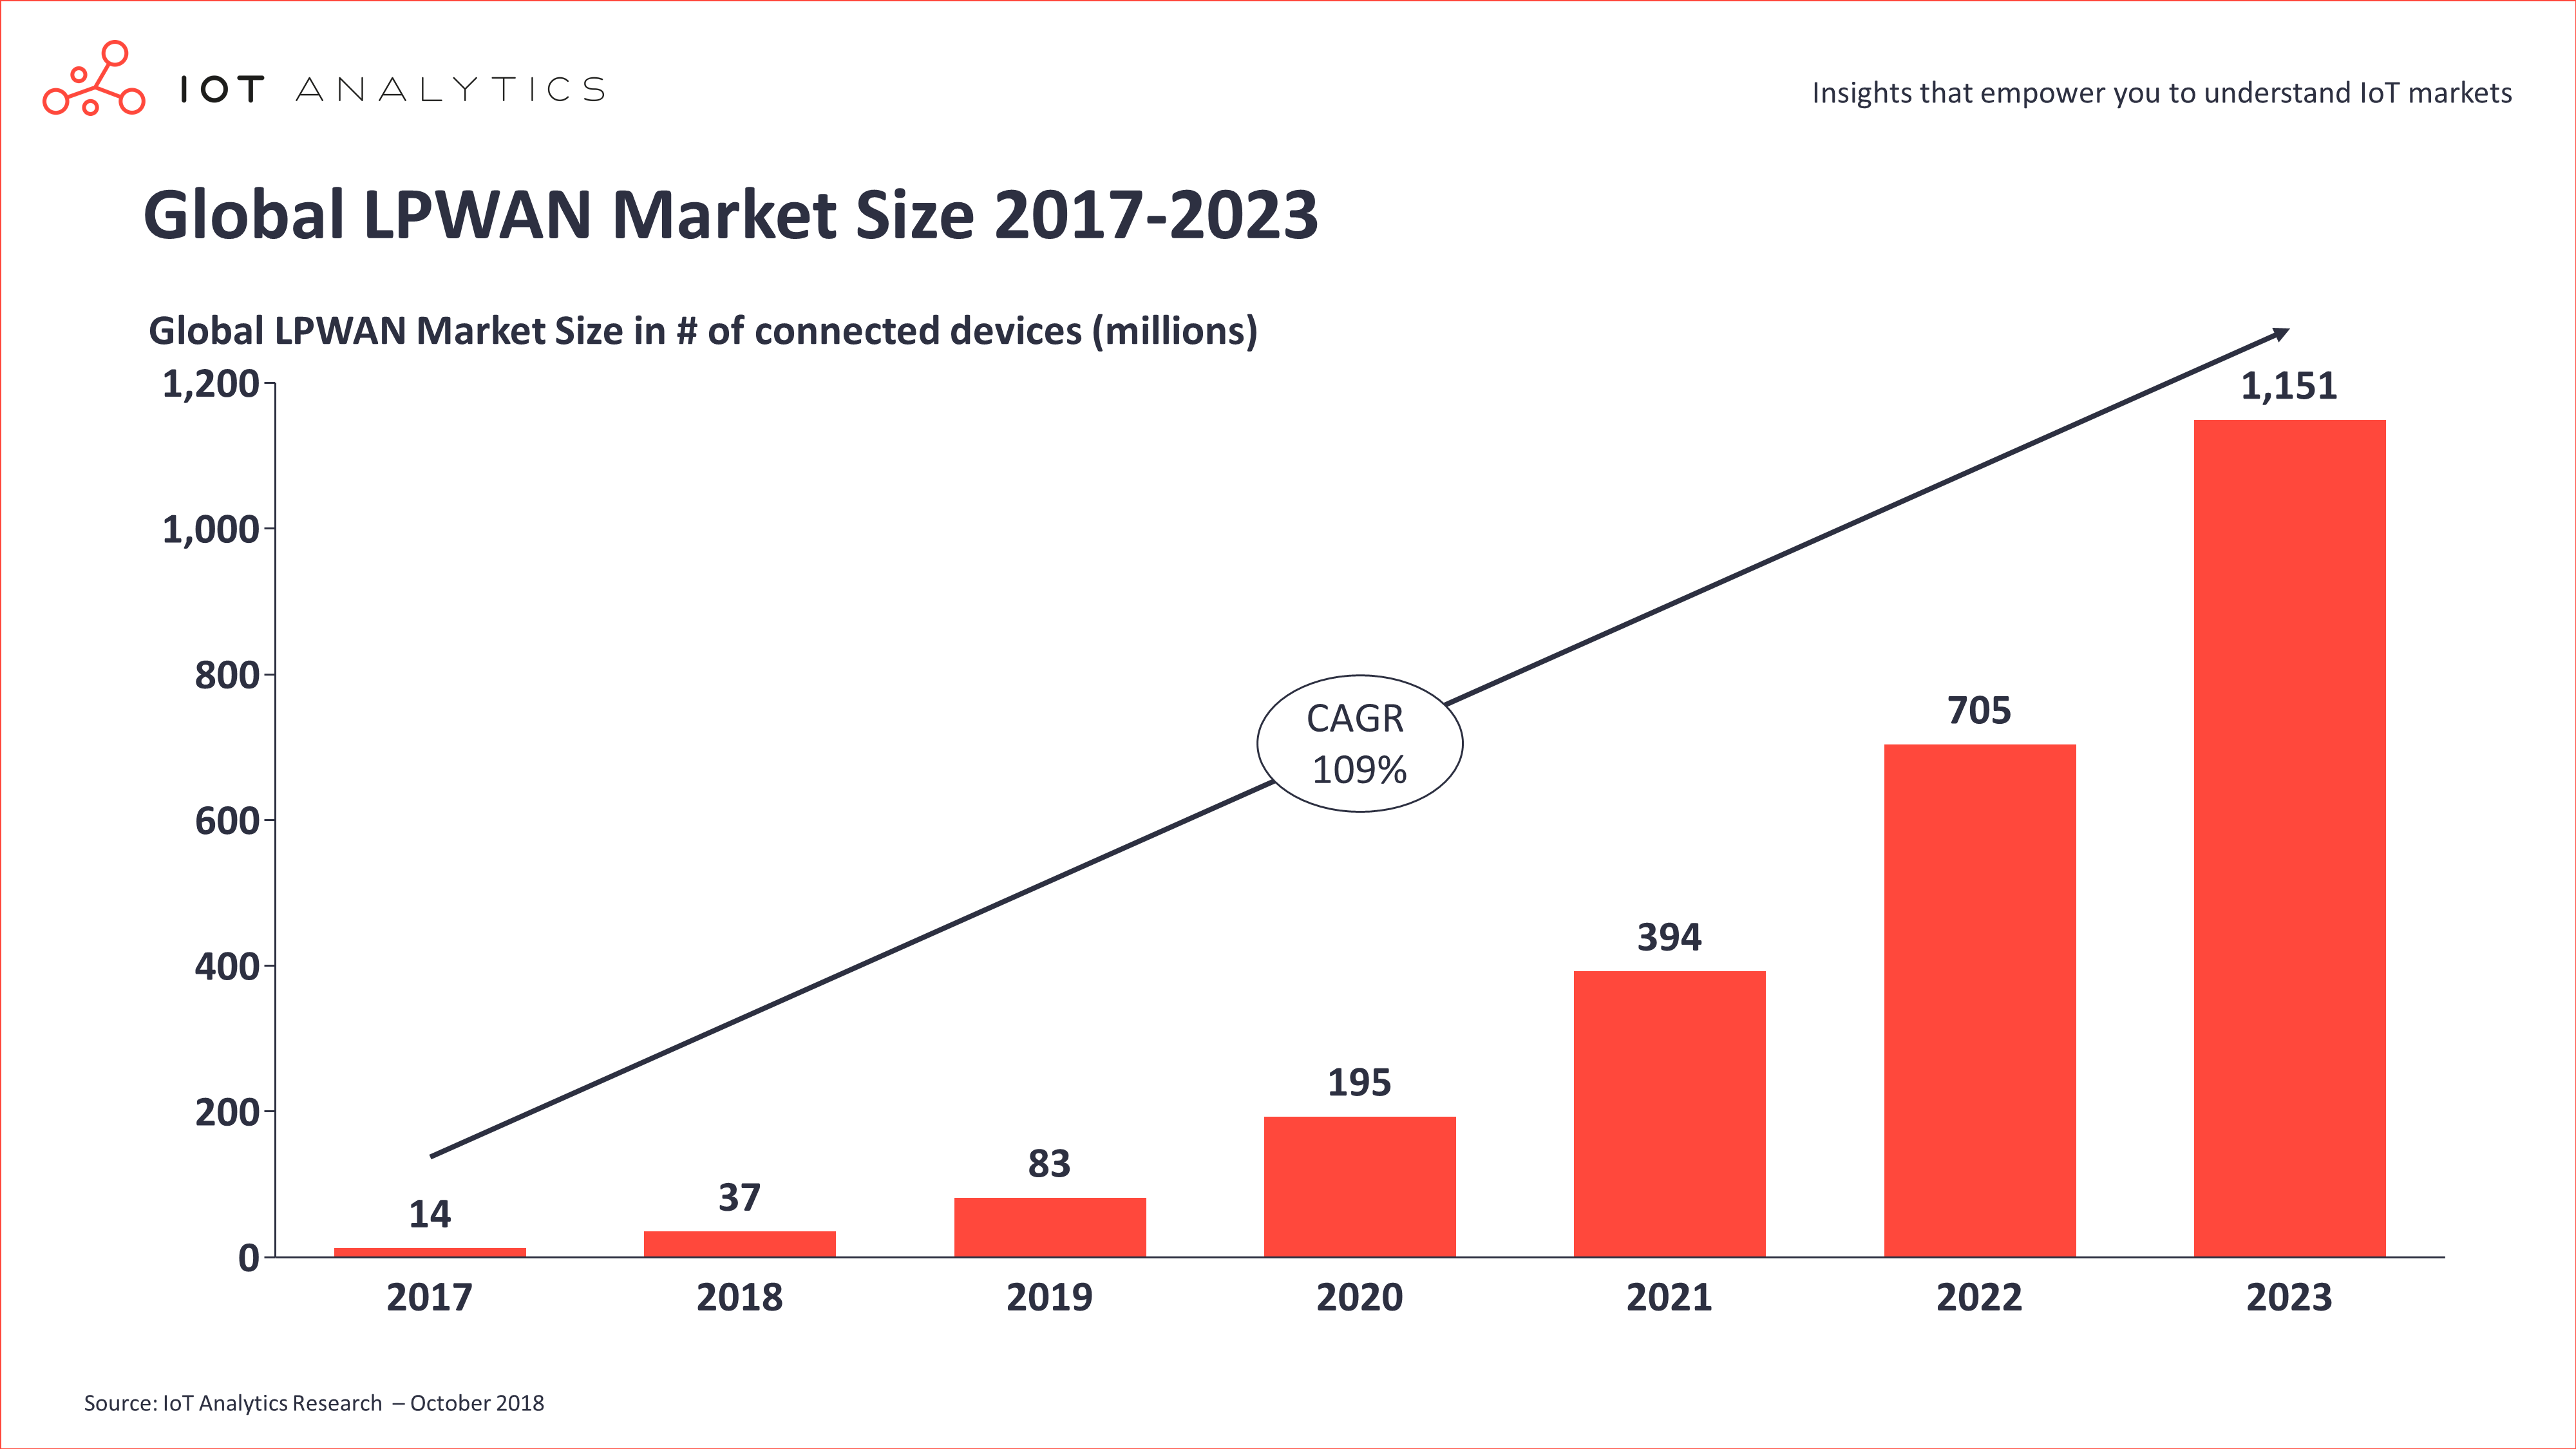 LPWAN: The fastest growing IoT communication technology - IoT Now